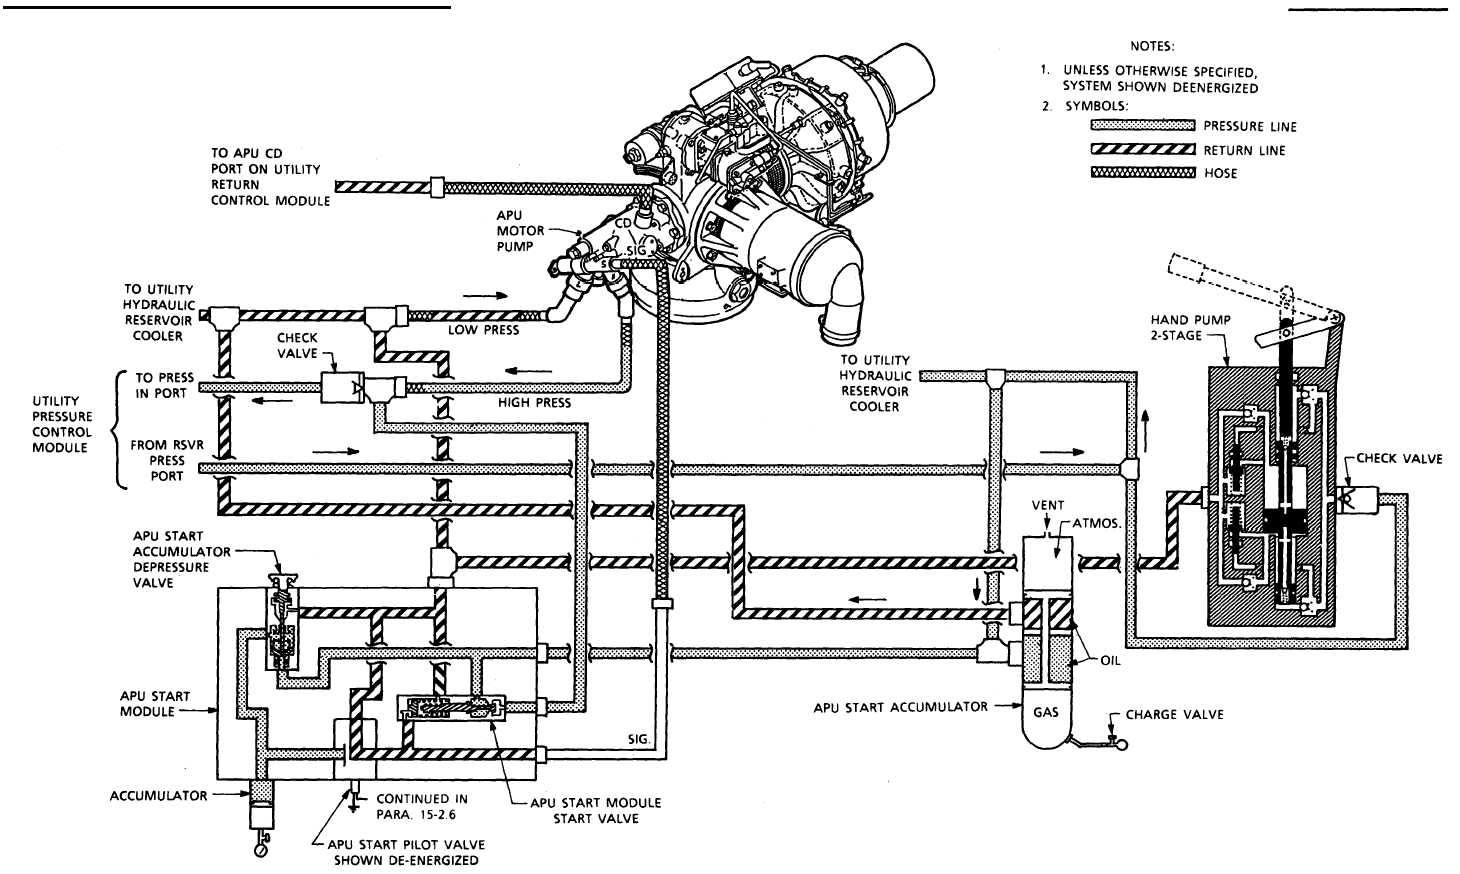 tractor wiring diagram with Tm 55 1520 240 T 3 752 on 125932122 Lexmark T640 T642 T644 Service Repair Manual moreover John Deere Wiring Diagram 7 Pin Connector in addition John Deere Stx38 Parts Diagram likewise Sears Tractor Wire Diagram together with Generator.